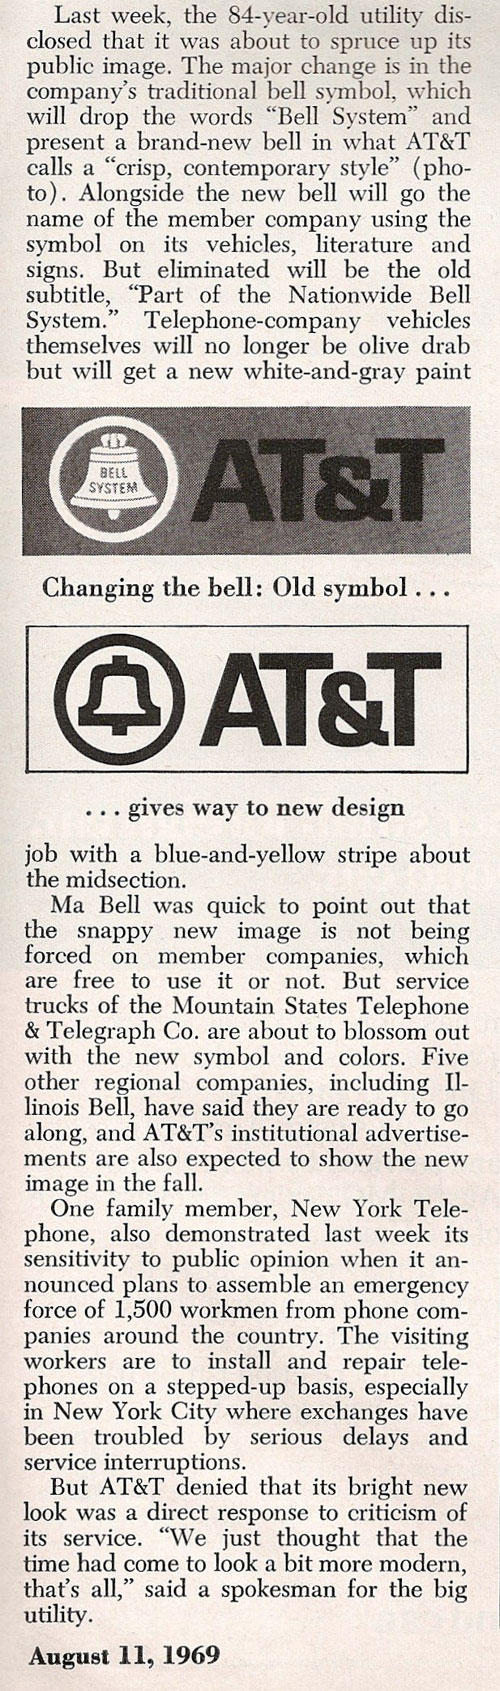 Saul Bass Bell System newspaper clipping